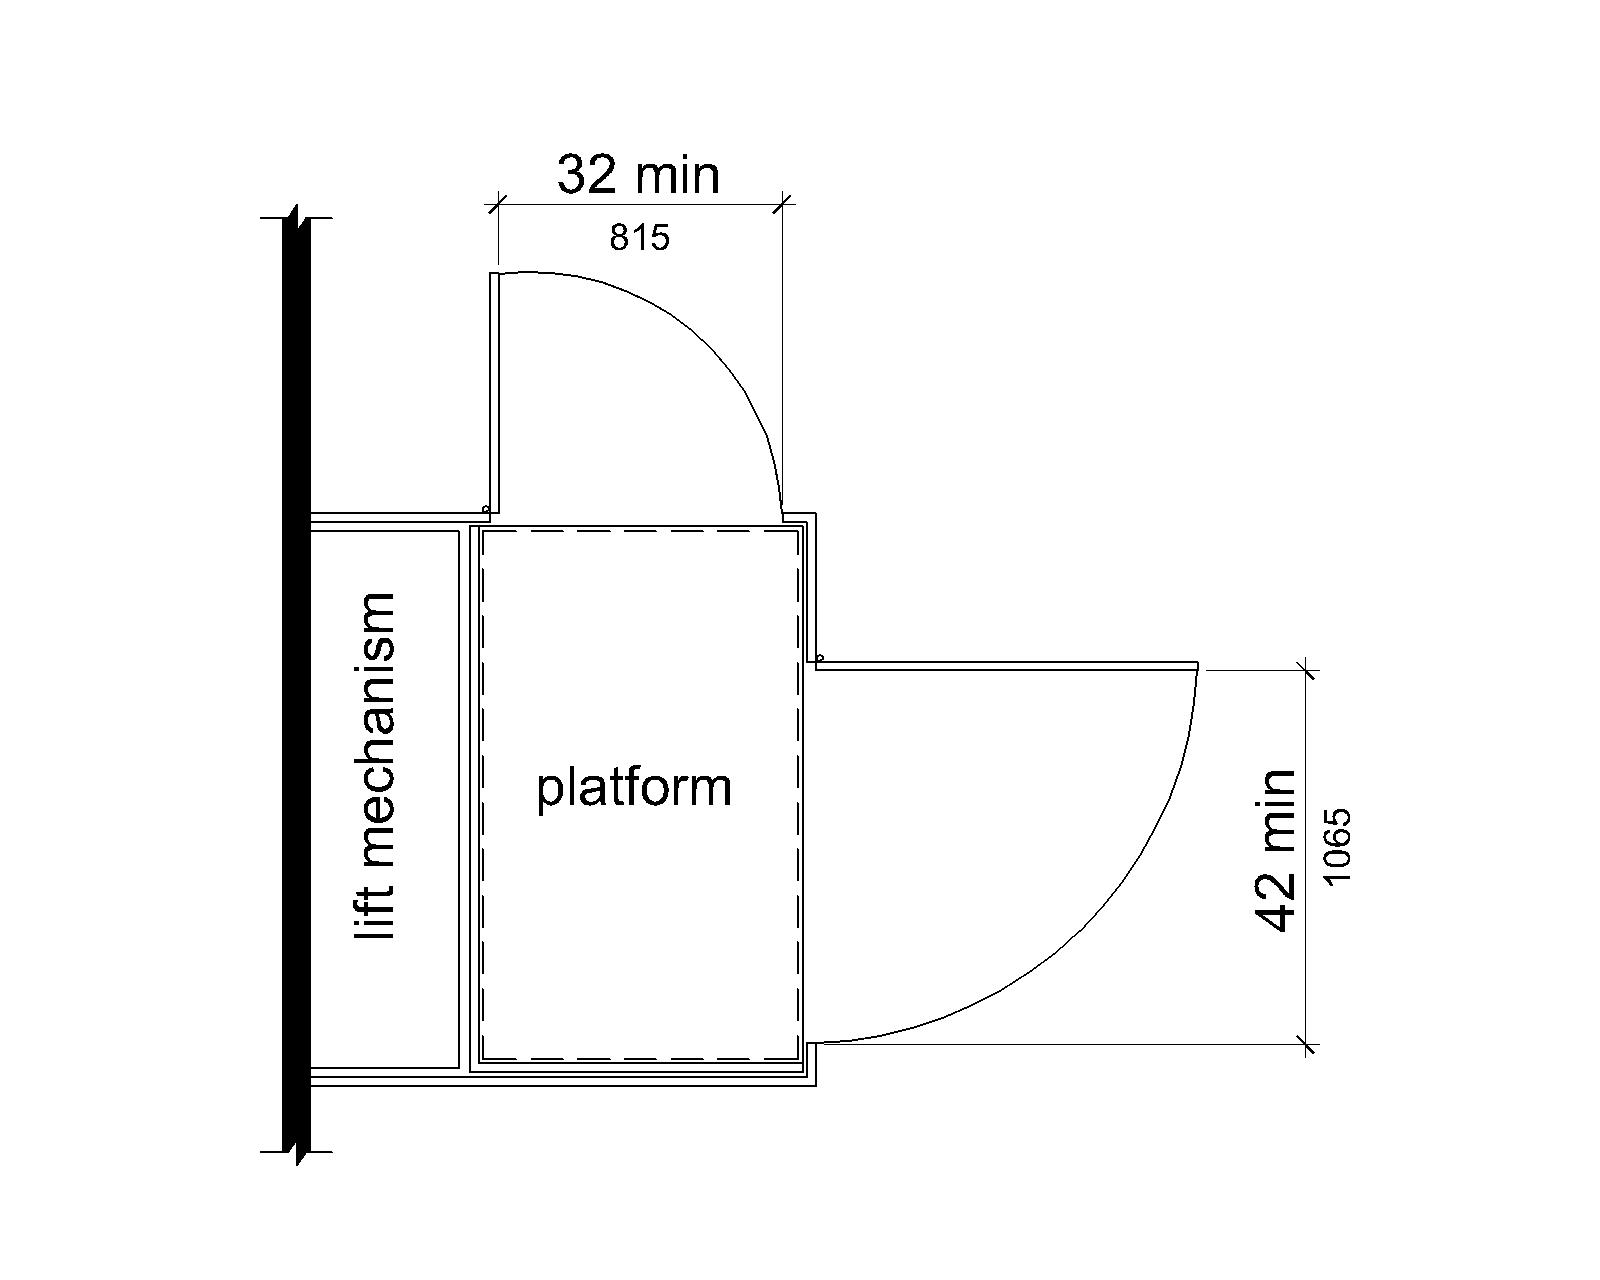 A rectangular lift platform is shown in plan view with an end door 32 inches (815 mm) minimum, and a side door 42 inches (1065 mm) minimum.